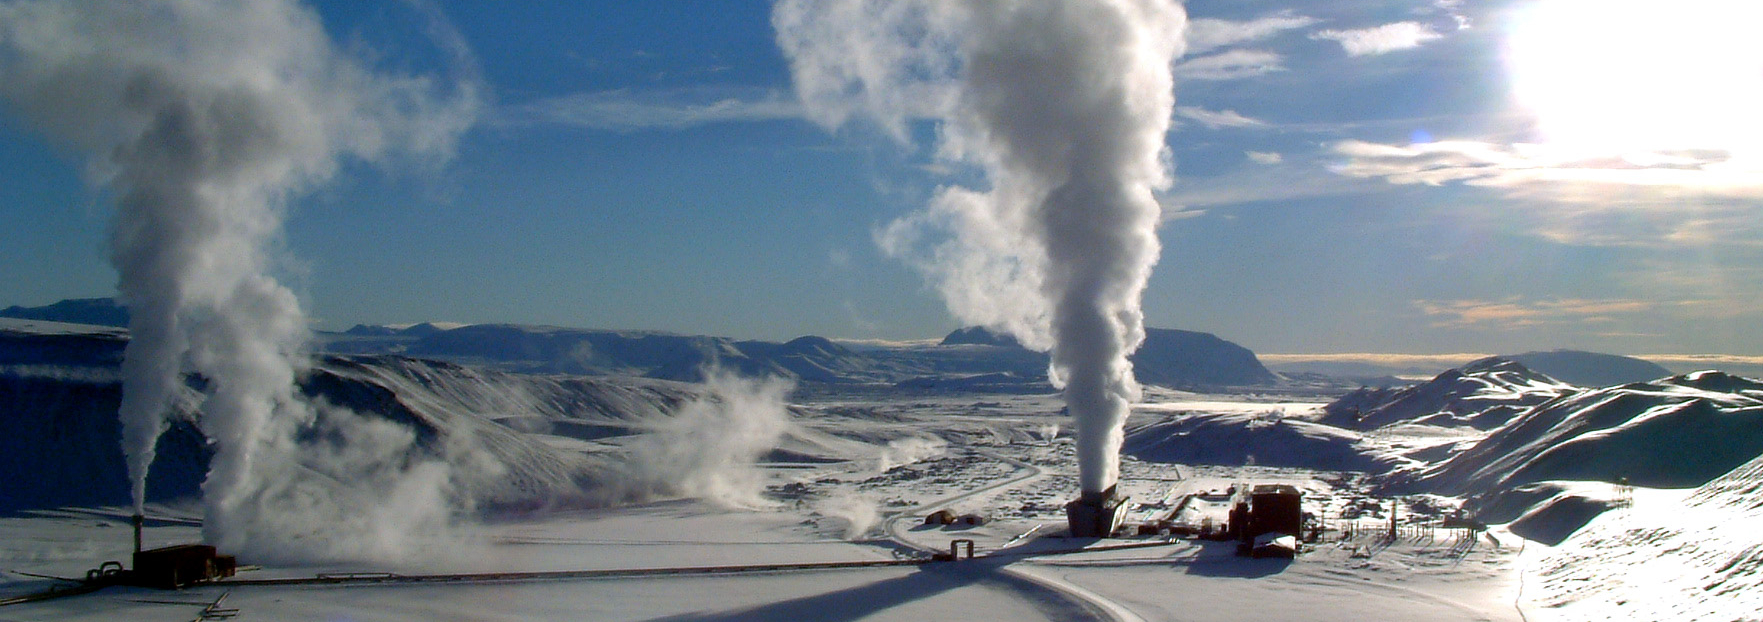 Krafla_geothermal_power_station